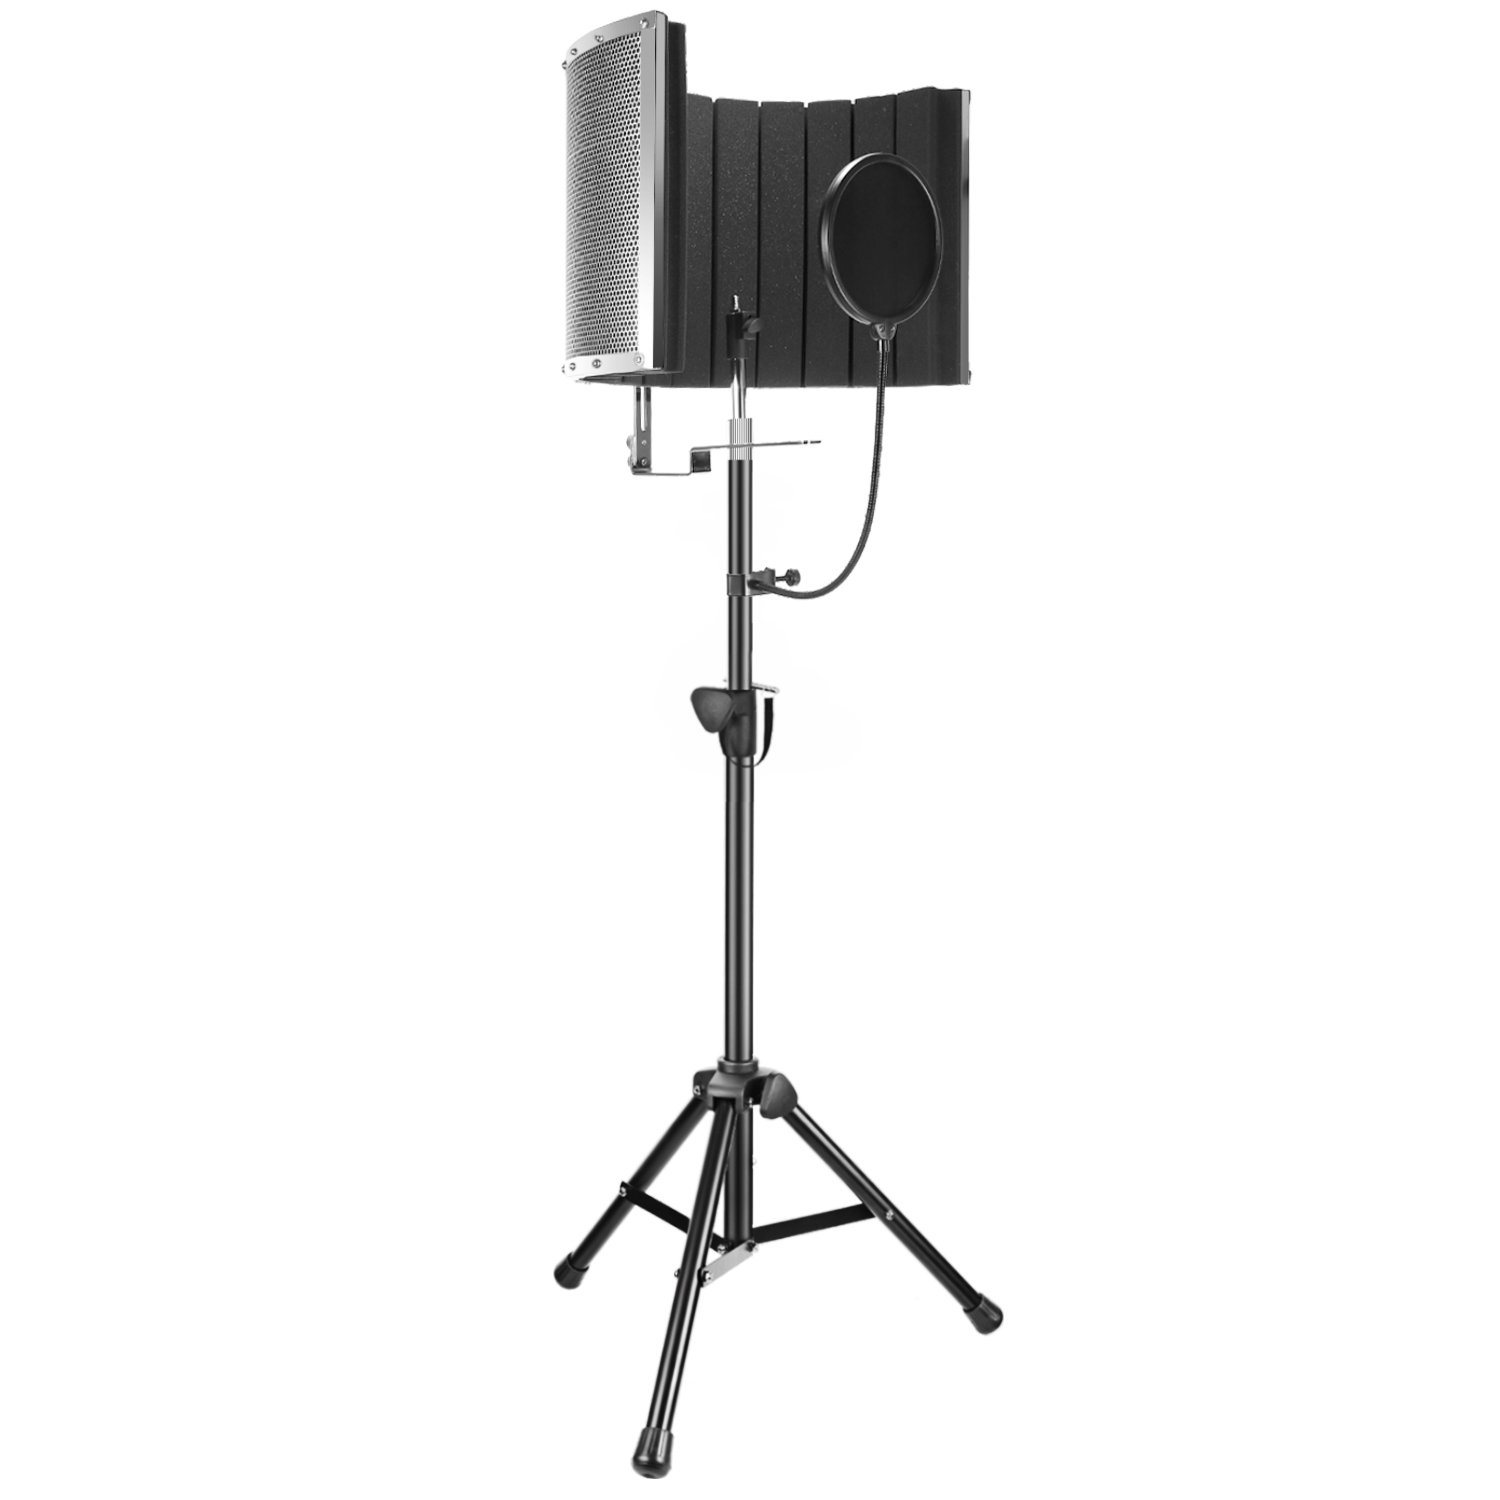 Neewer Professional Microphone Studio Recording Accessories Include: NW-6 Microphone Isolation Panel, Wind Screen Bracket Stand and Pop Filter for Vocal Acoustic Recording and Podcasting by Neewer